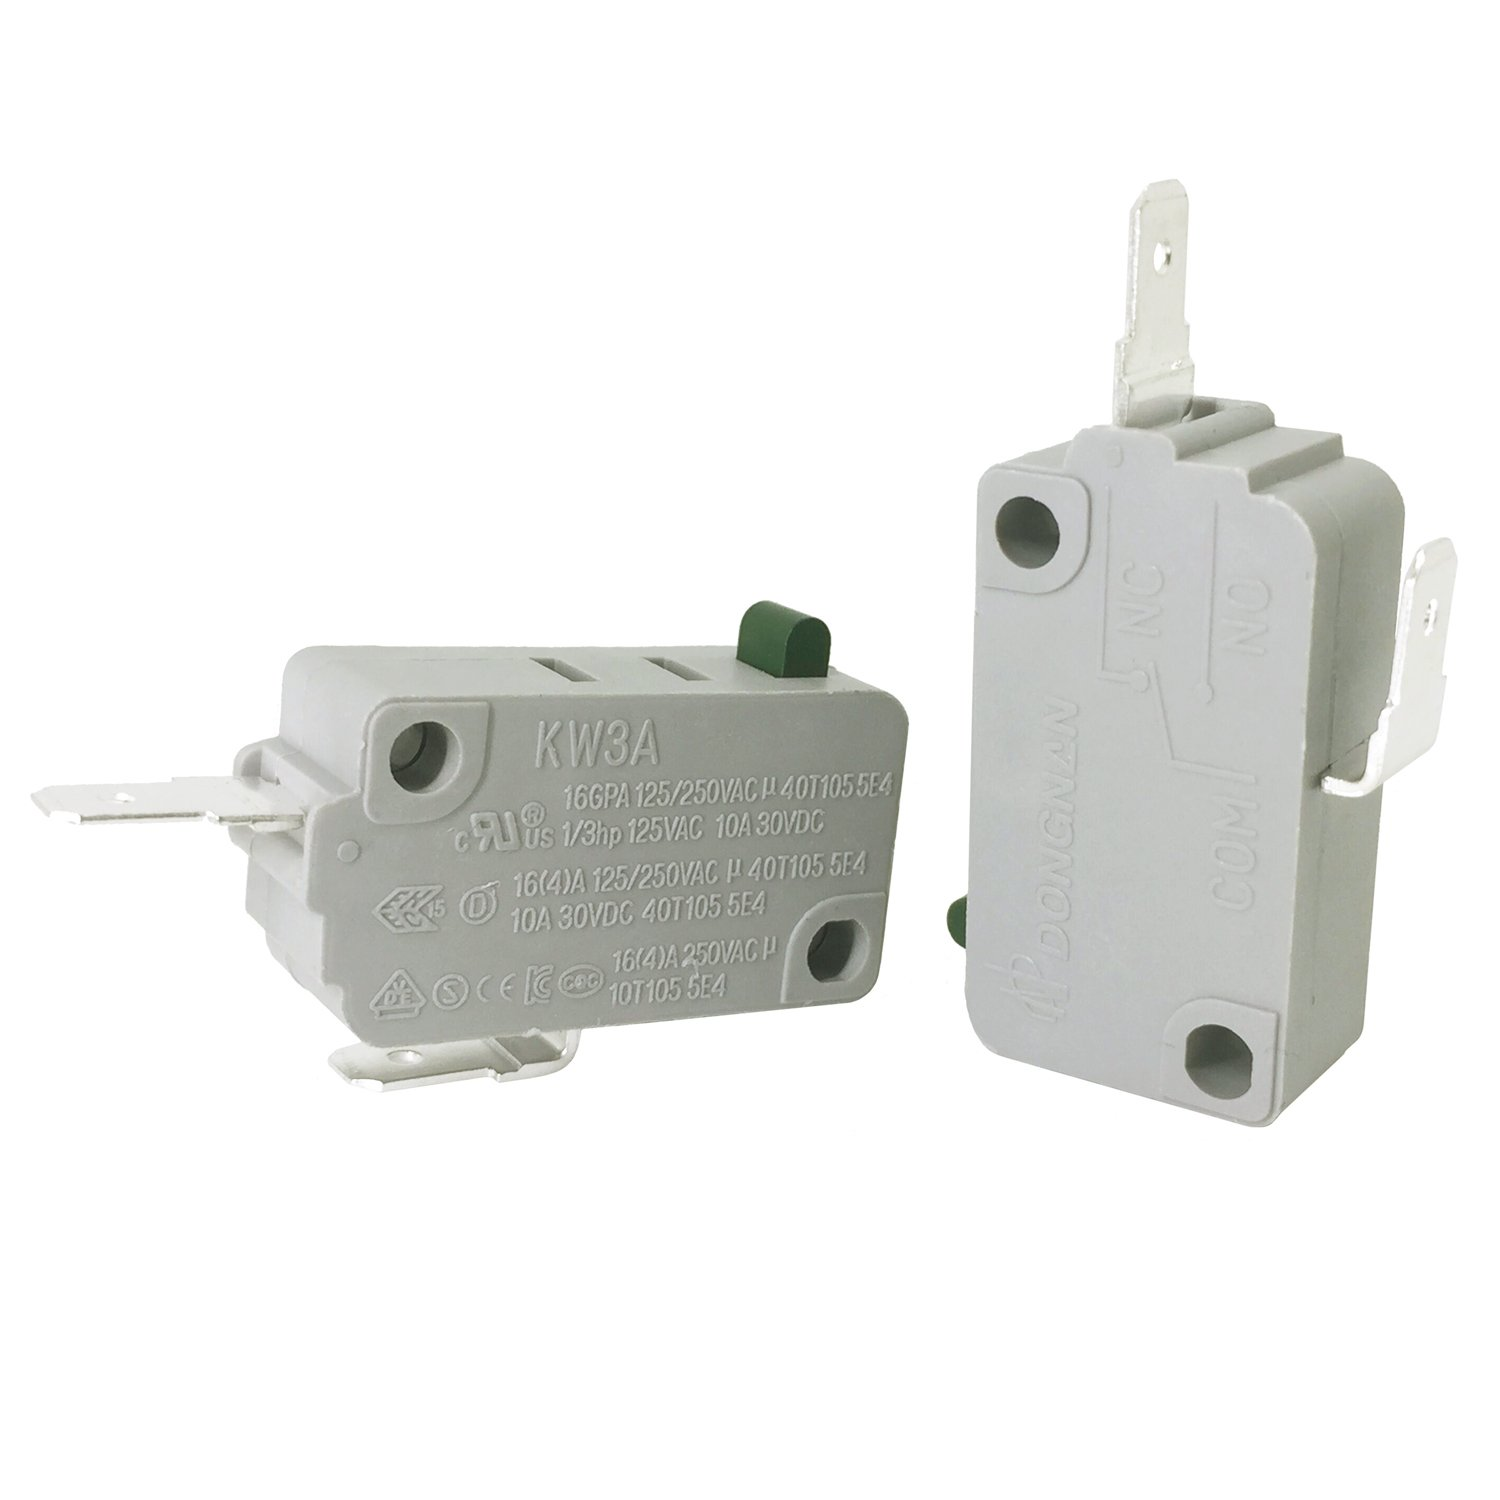 YOLISTIC 2Pcs KW3A NORMALLY OPEN MICROWAVE OVEN DOOR MICRO SWITCH DR52